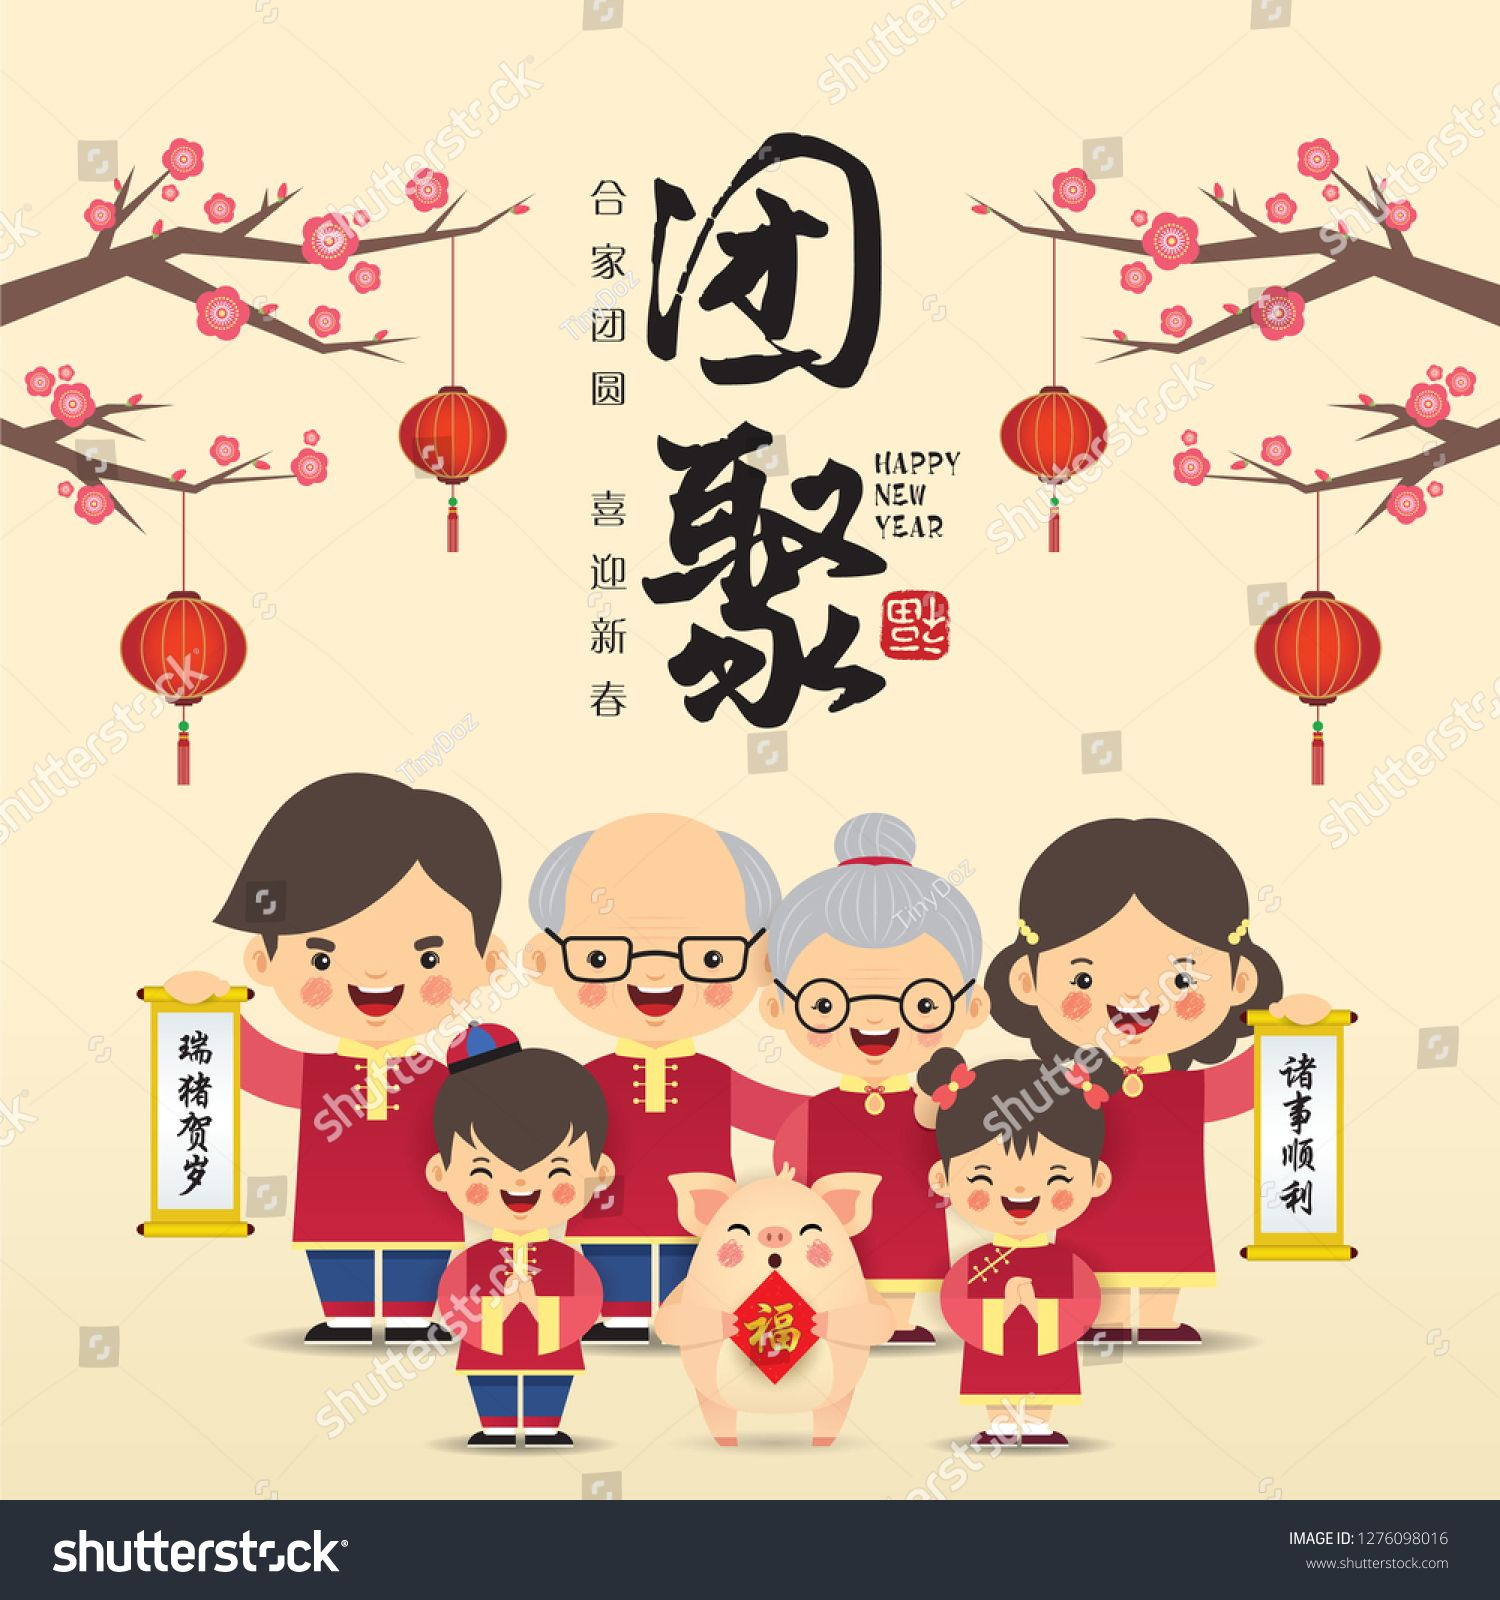 2019 Chinese cartoon family character design.